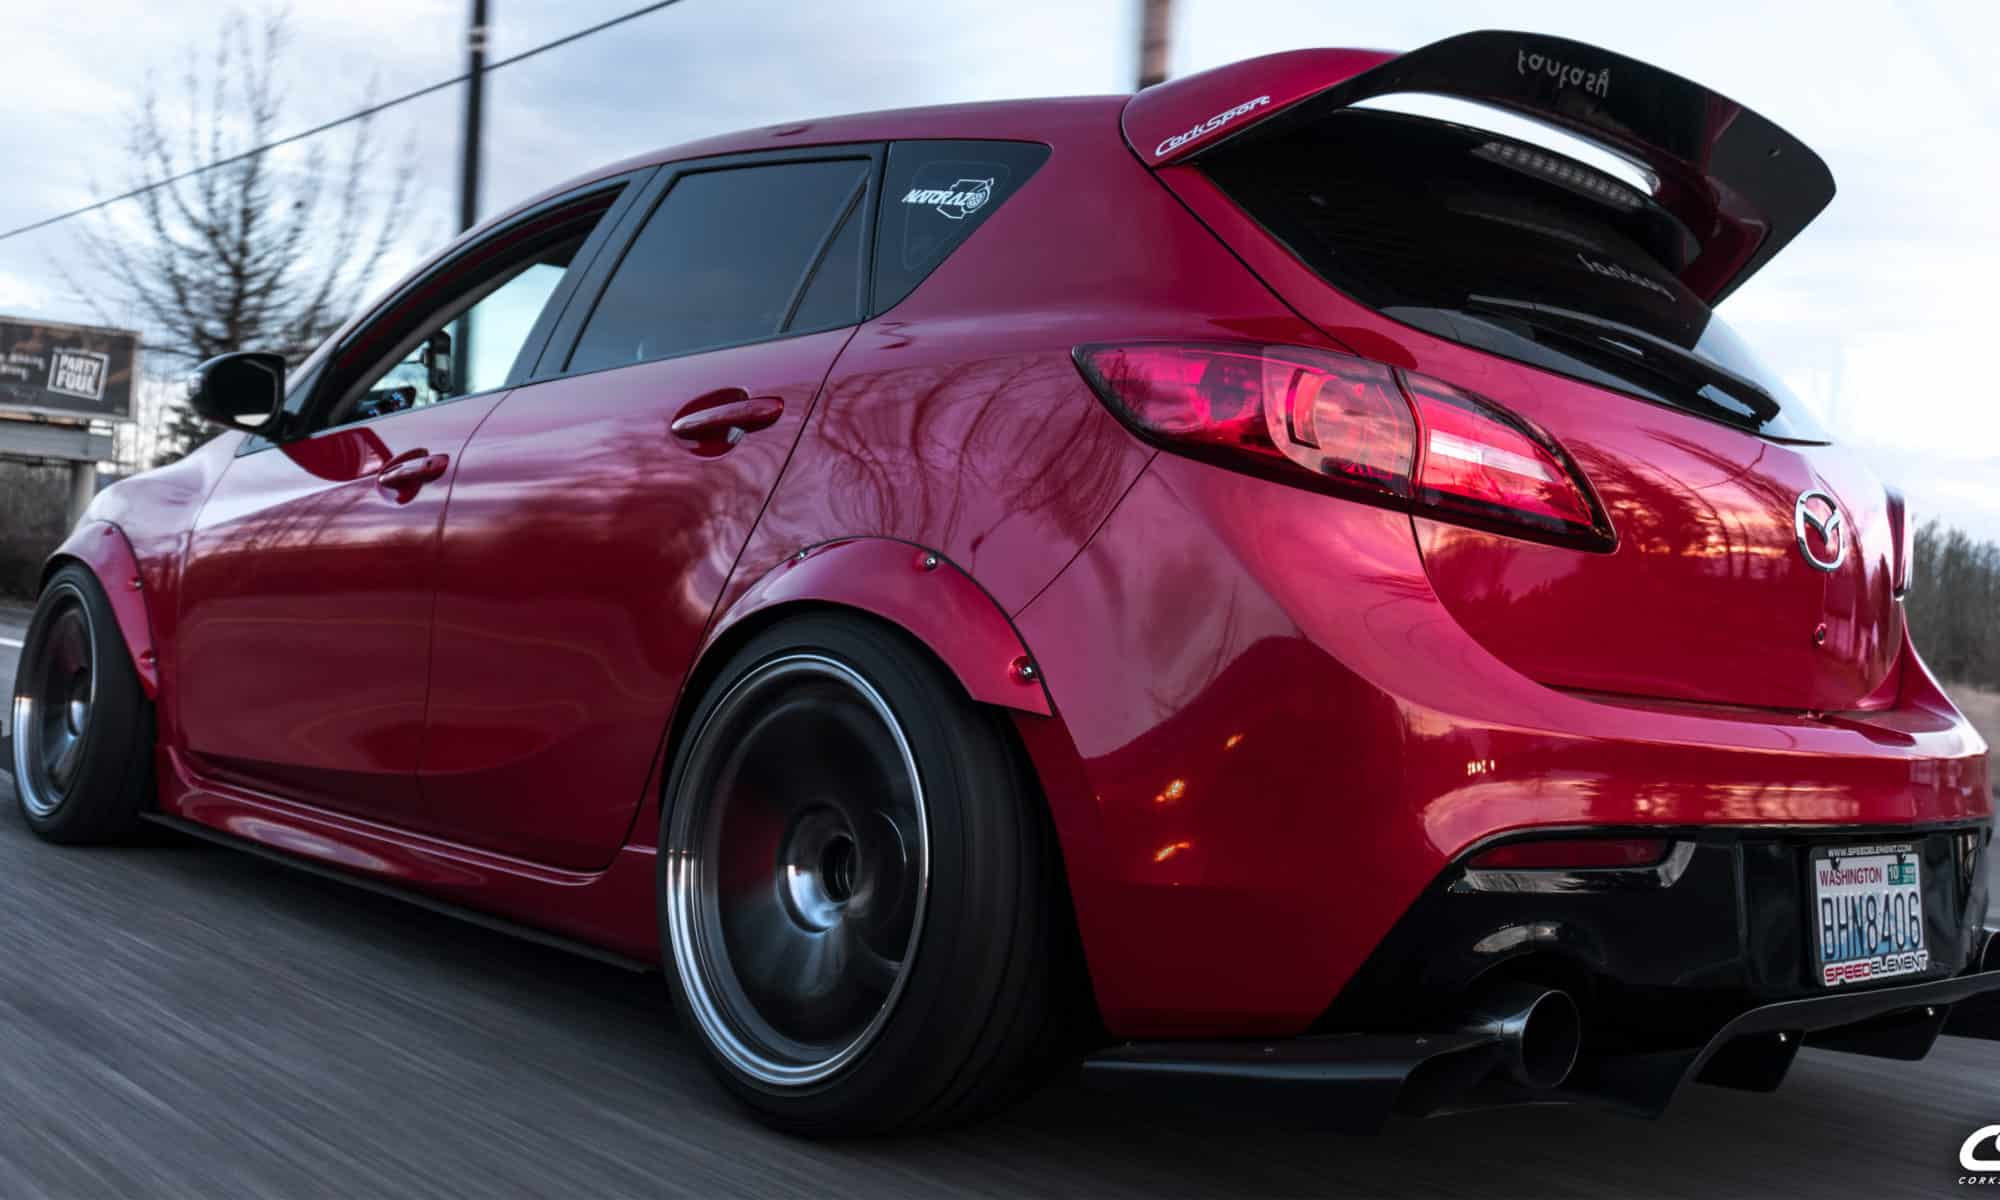 Brett's Mazdaspeed 3 Build